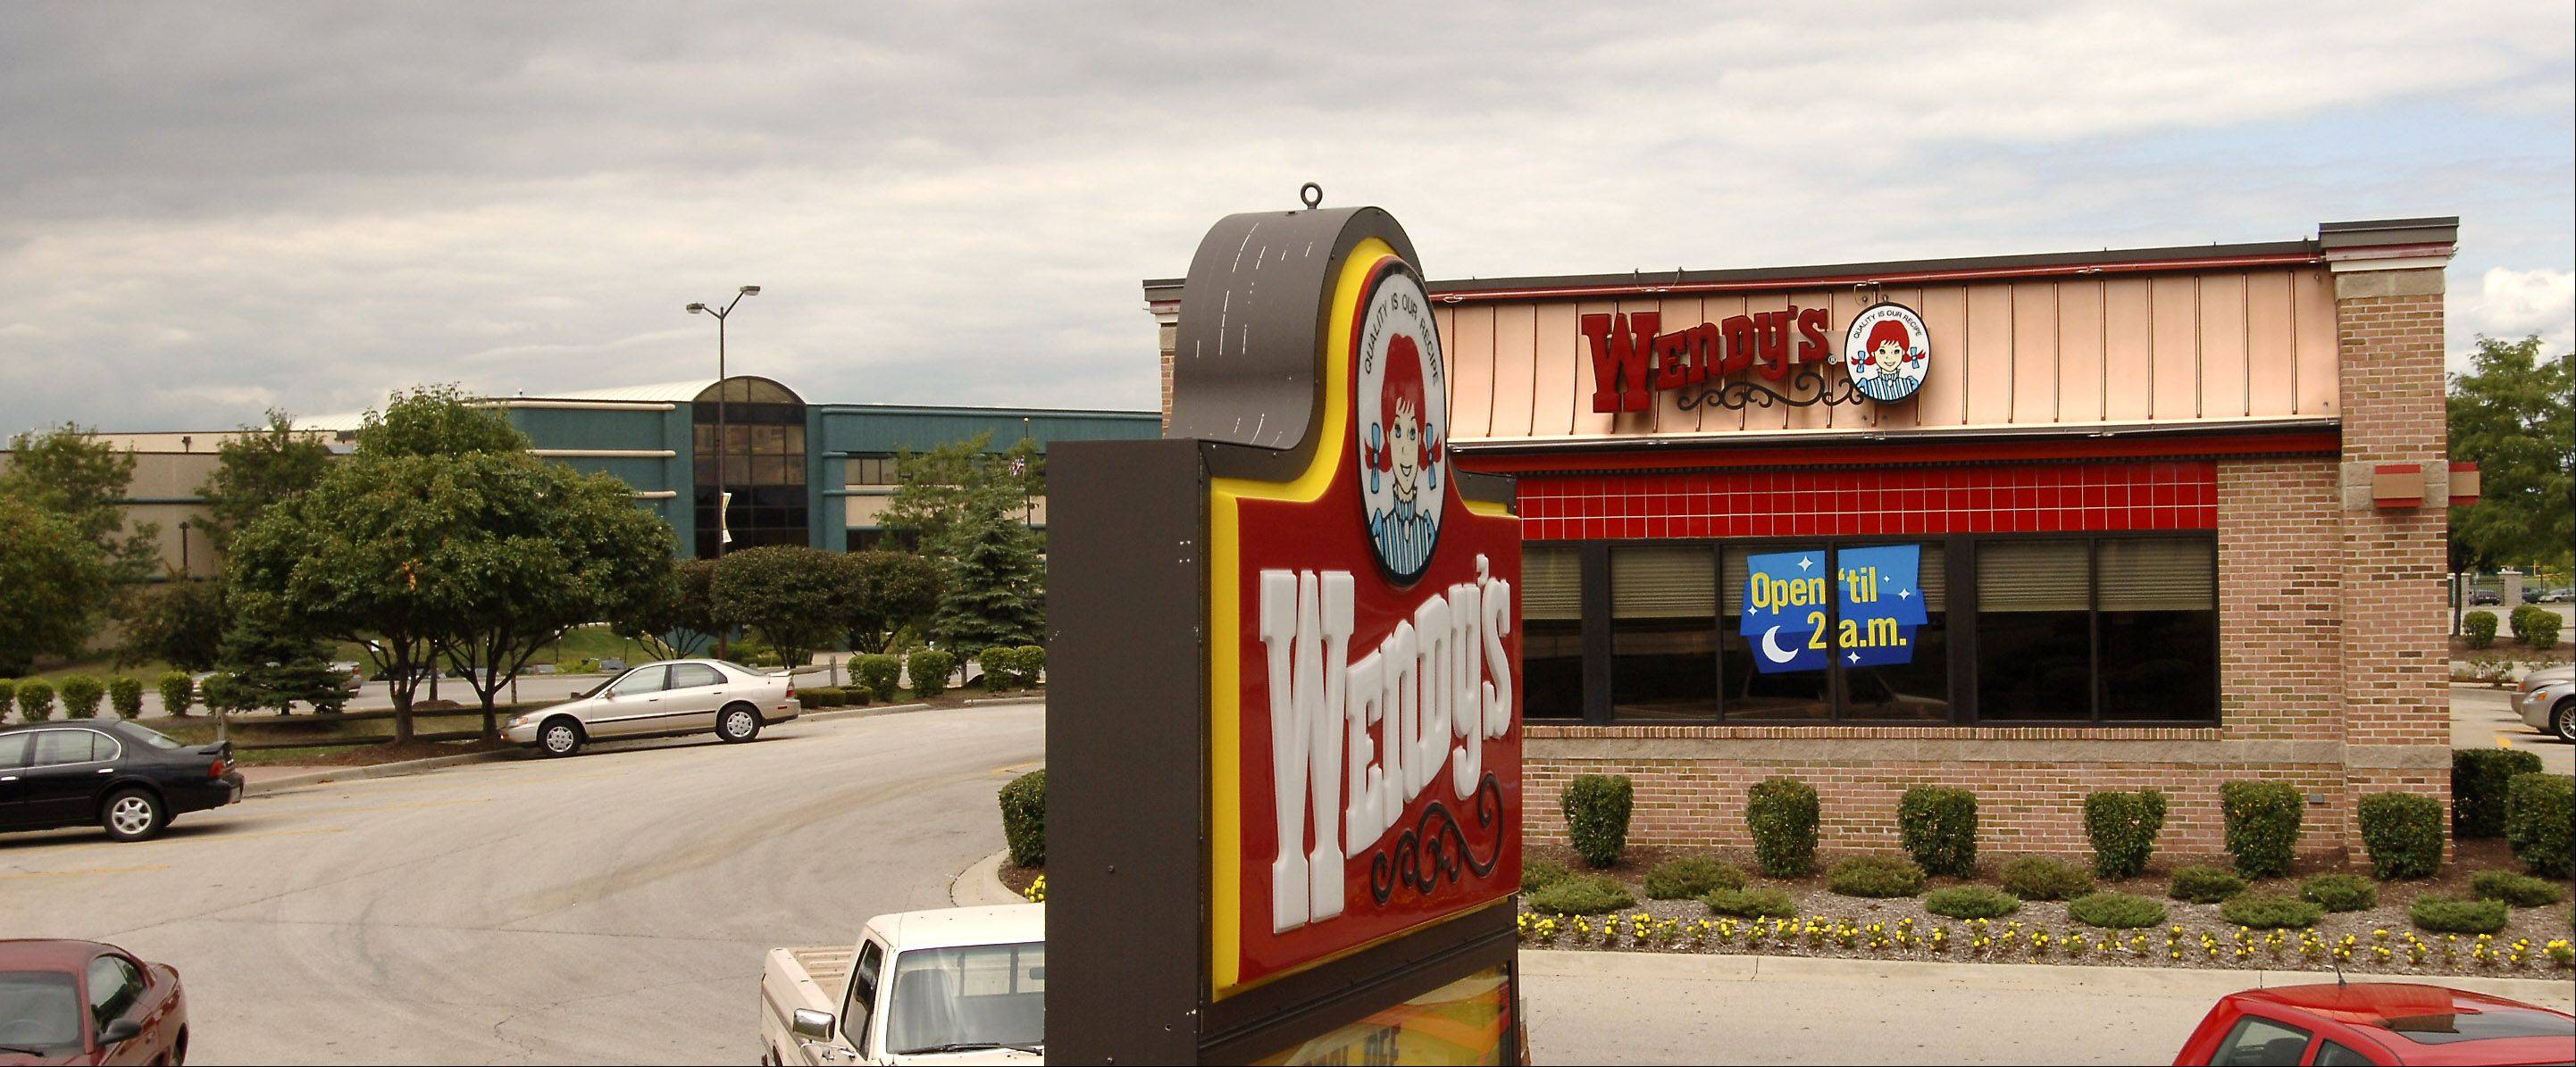 Wendy�s says its third-quarter loss narrowed as more customers snapped up offerings at its restaurants including its new Pretzel Bacon Cheeseburger.